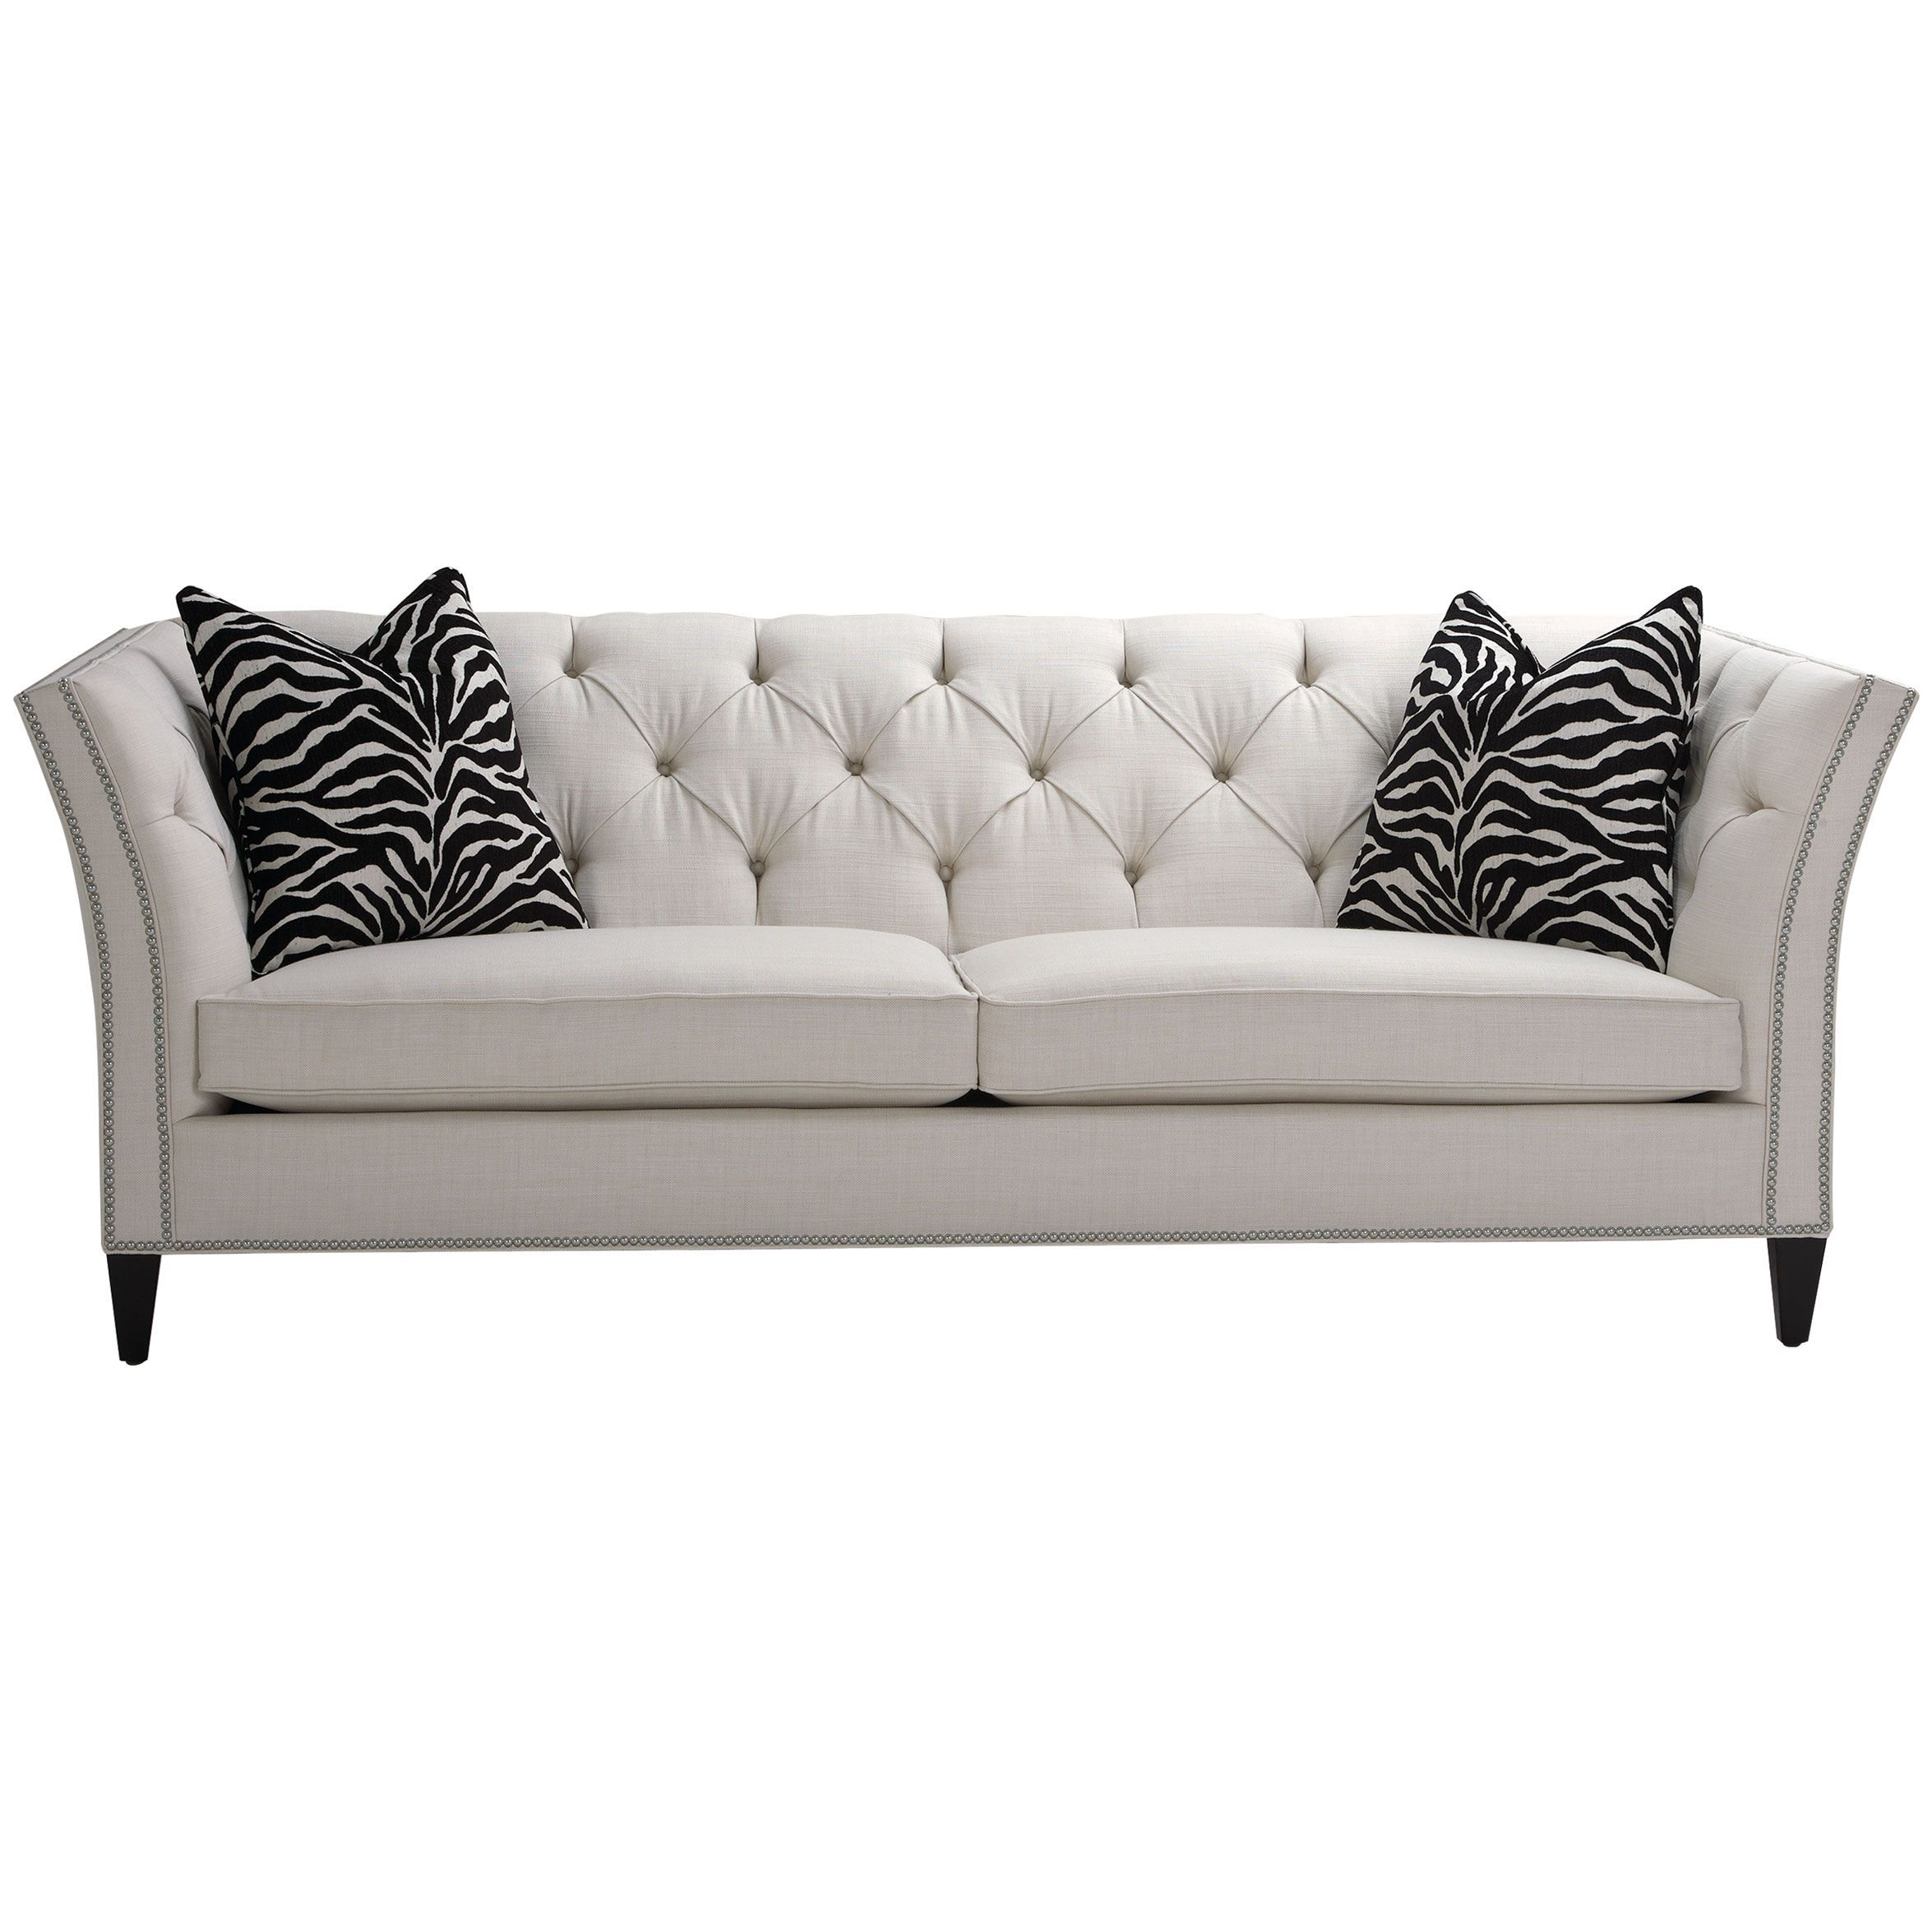 ethan allen paramount sofa how much to reupholster a in leather sofas and loveseats couch